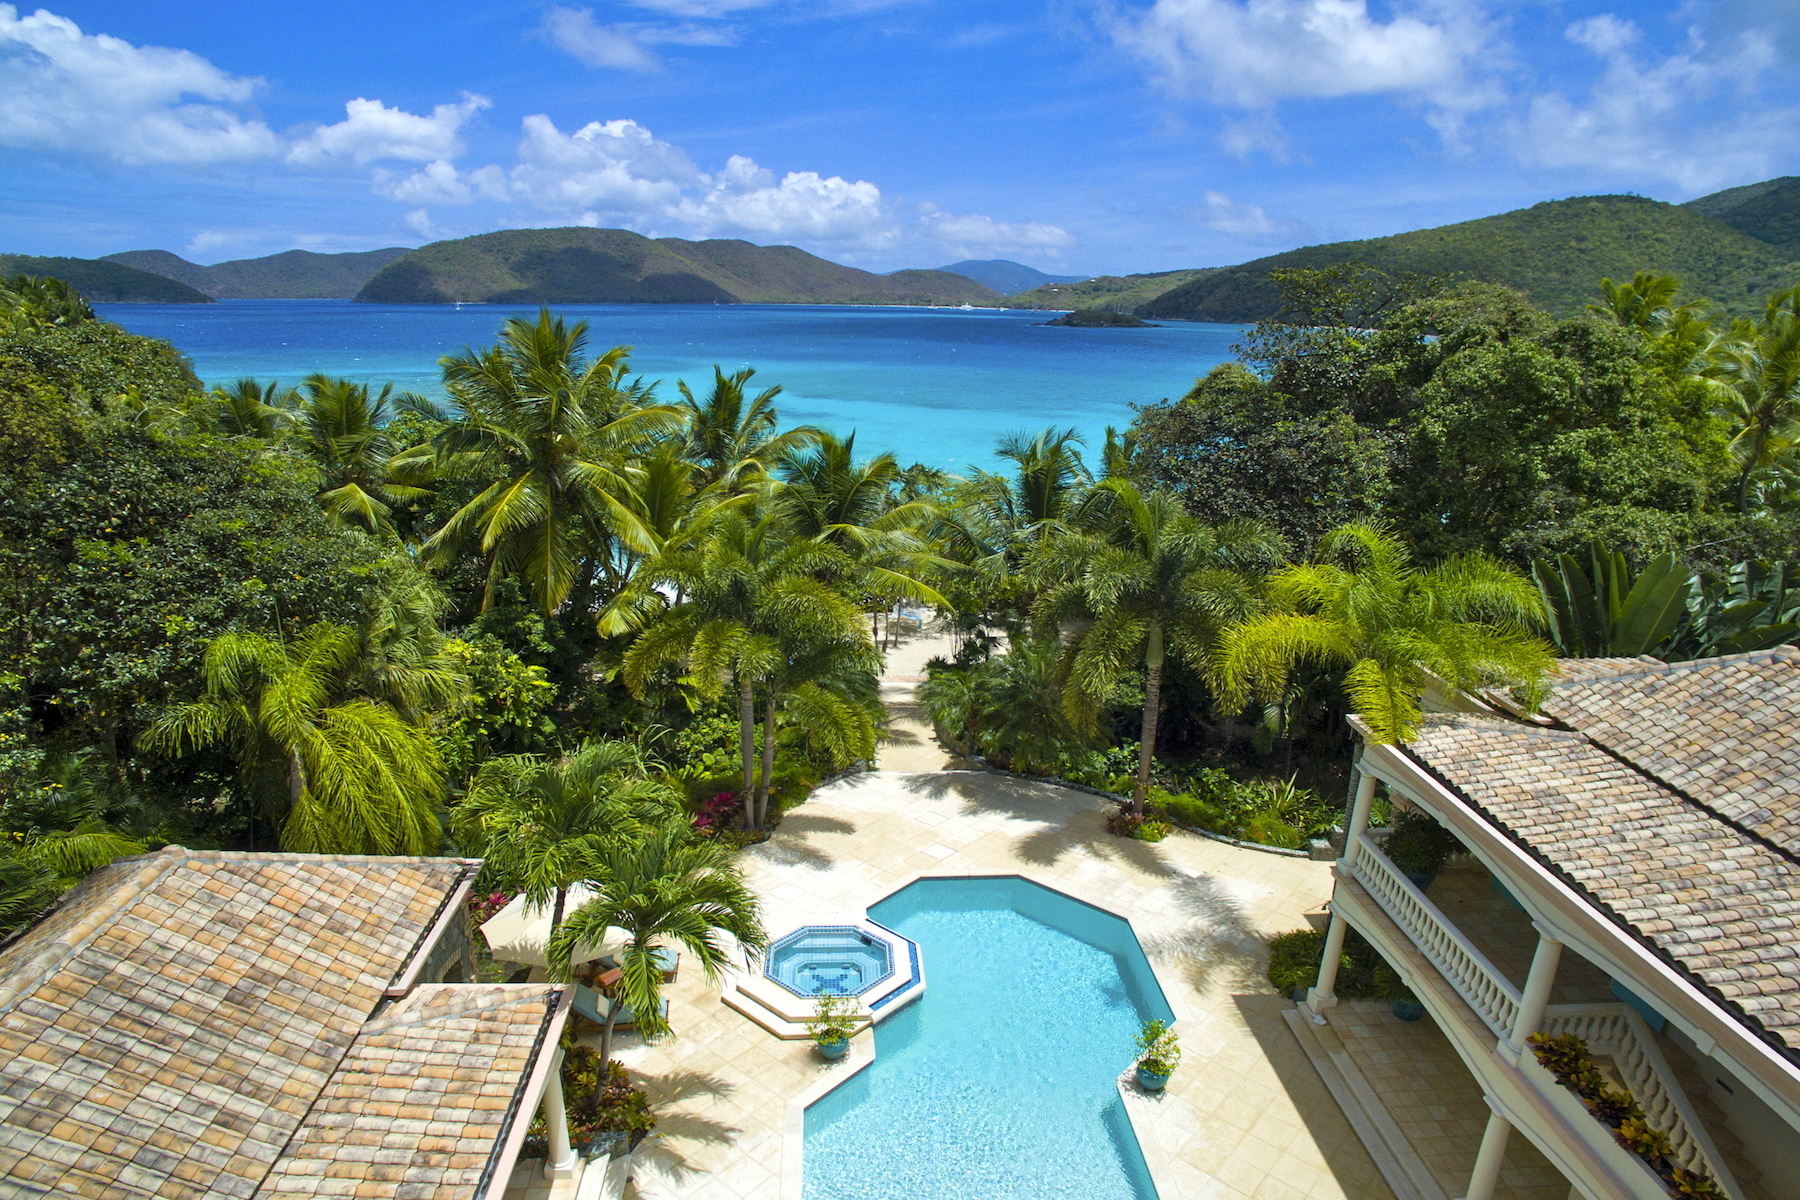 Casa Unifamiliar por un Venta en 1 Peter Bay 1 Peter Bay St John, Virgin Islands 00830 Islas Virgenes Ee.Uu.